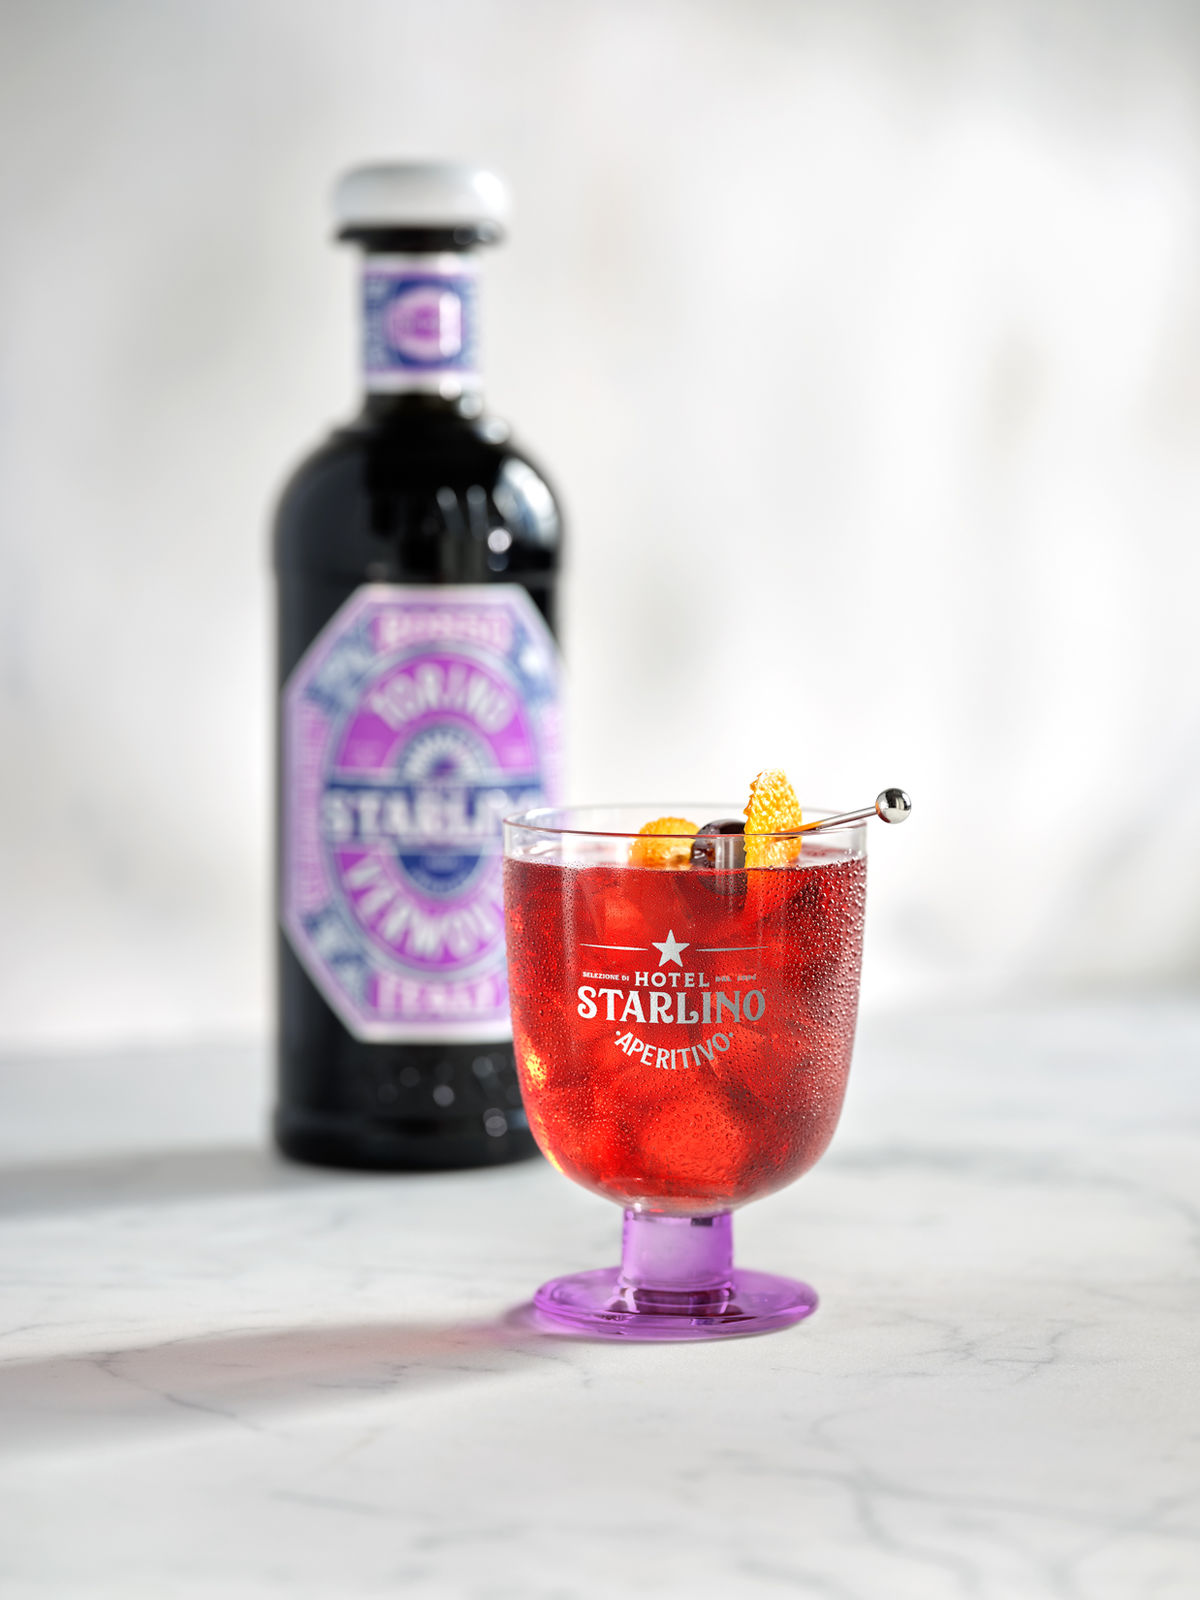 starlinococktail negroni1 f v2